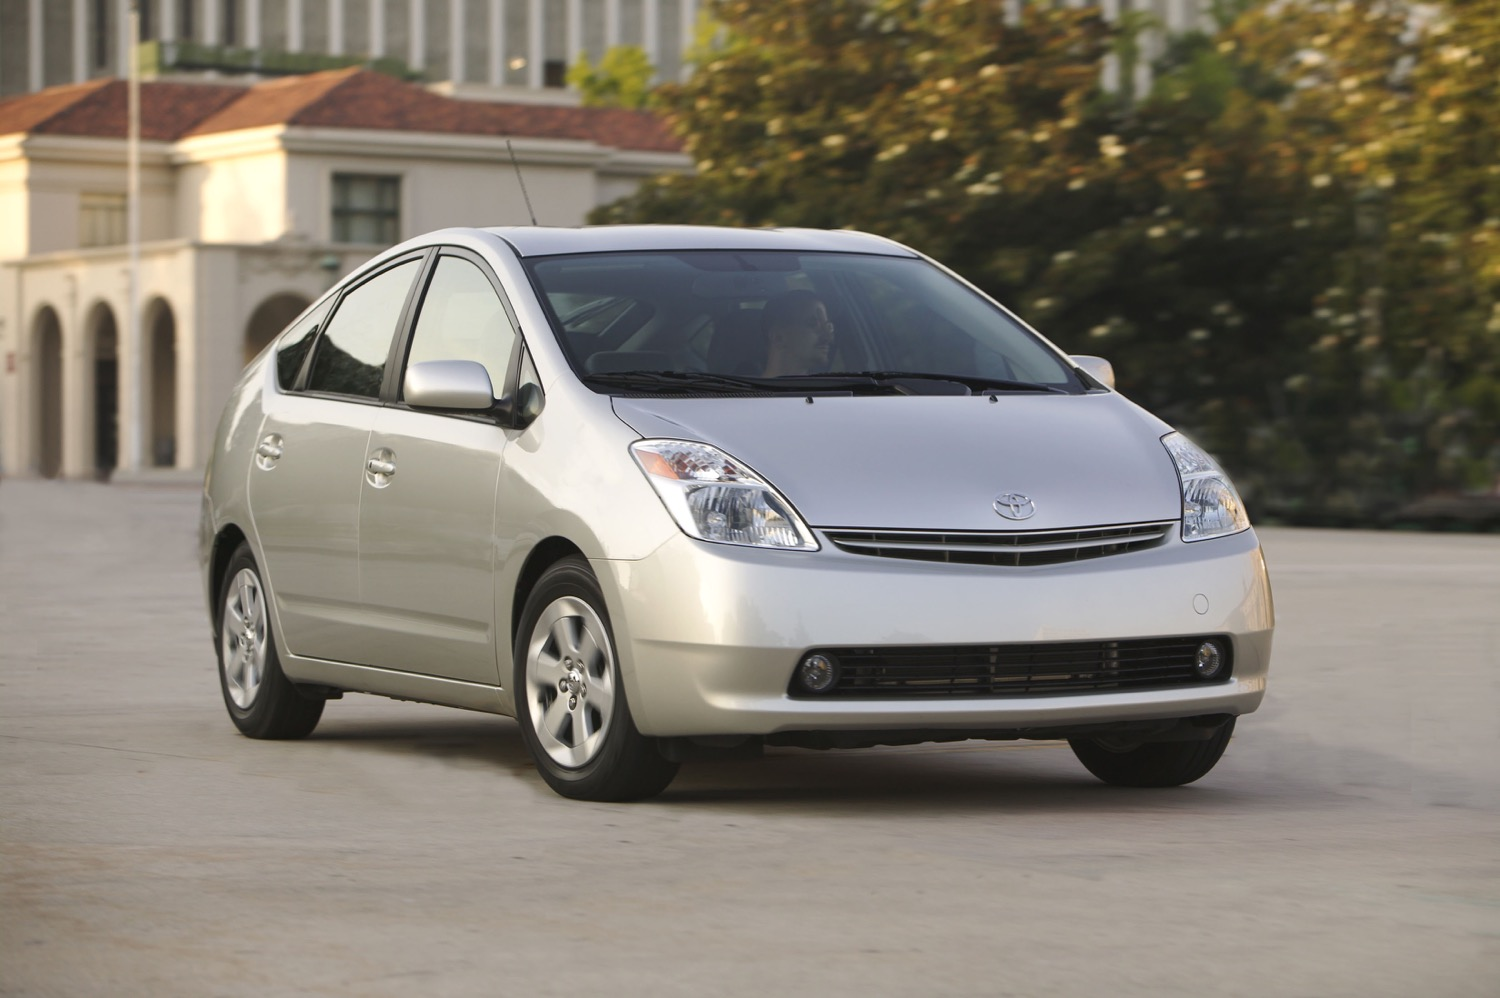 Toyota Prius Hybrid Is Cheapest Car Over 10 Years That You